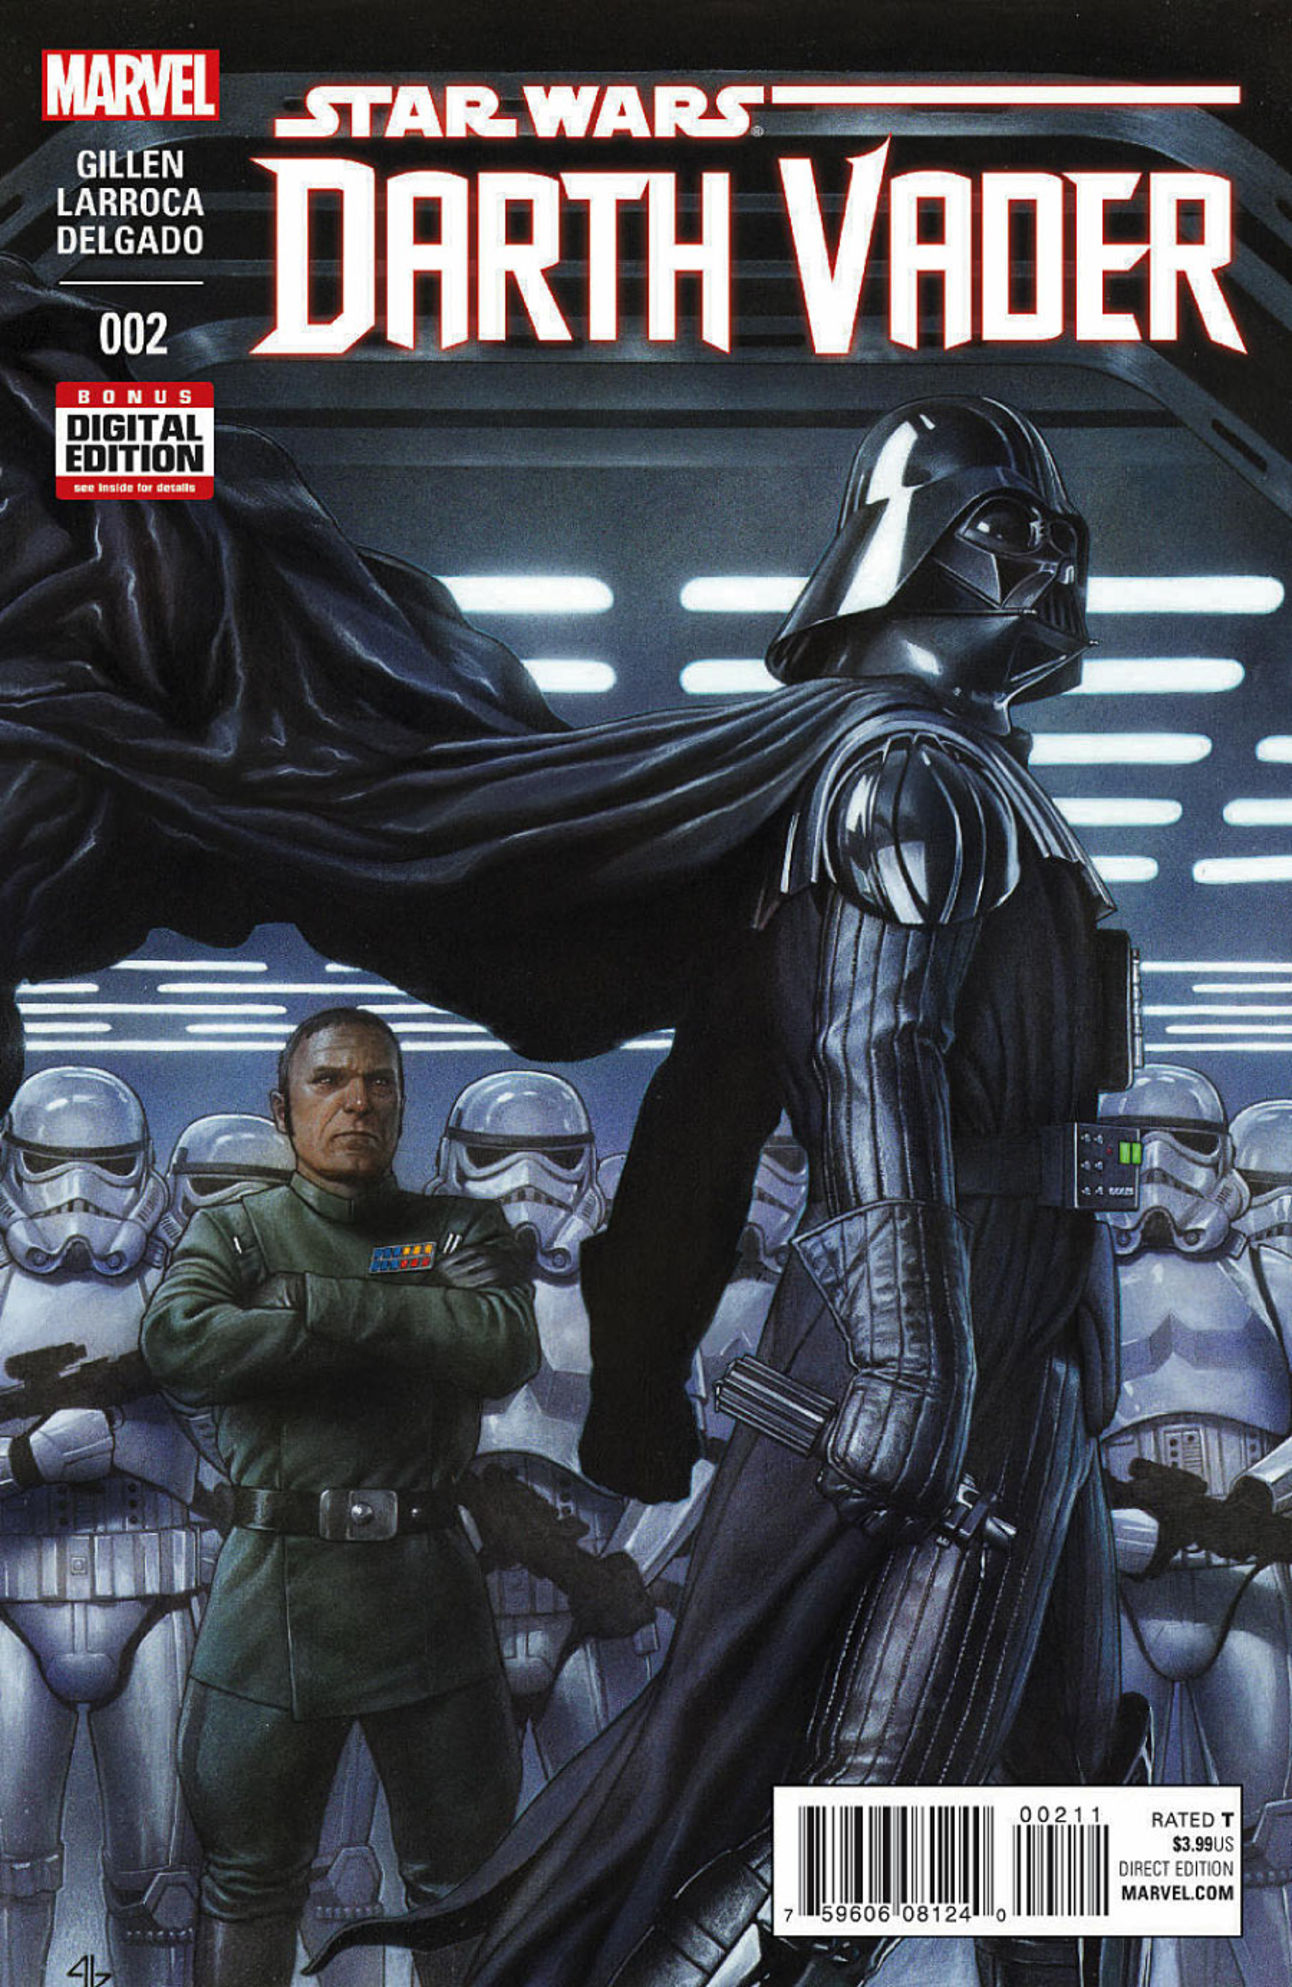 star-wars-darth-vader-2-marvel.jpg